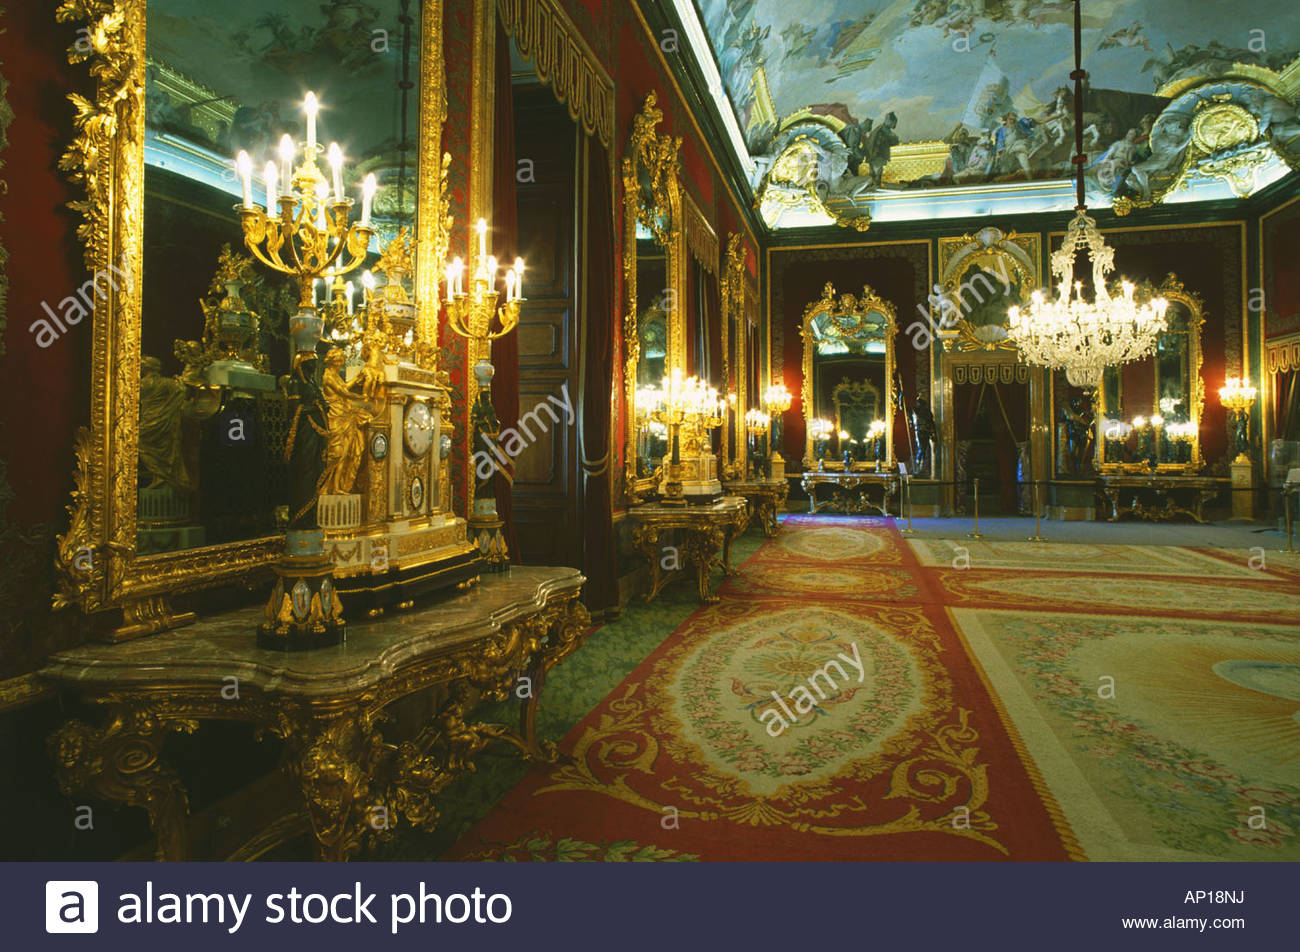 Amazing Throne Room Inside The Royal Palace Of Madrid